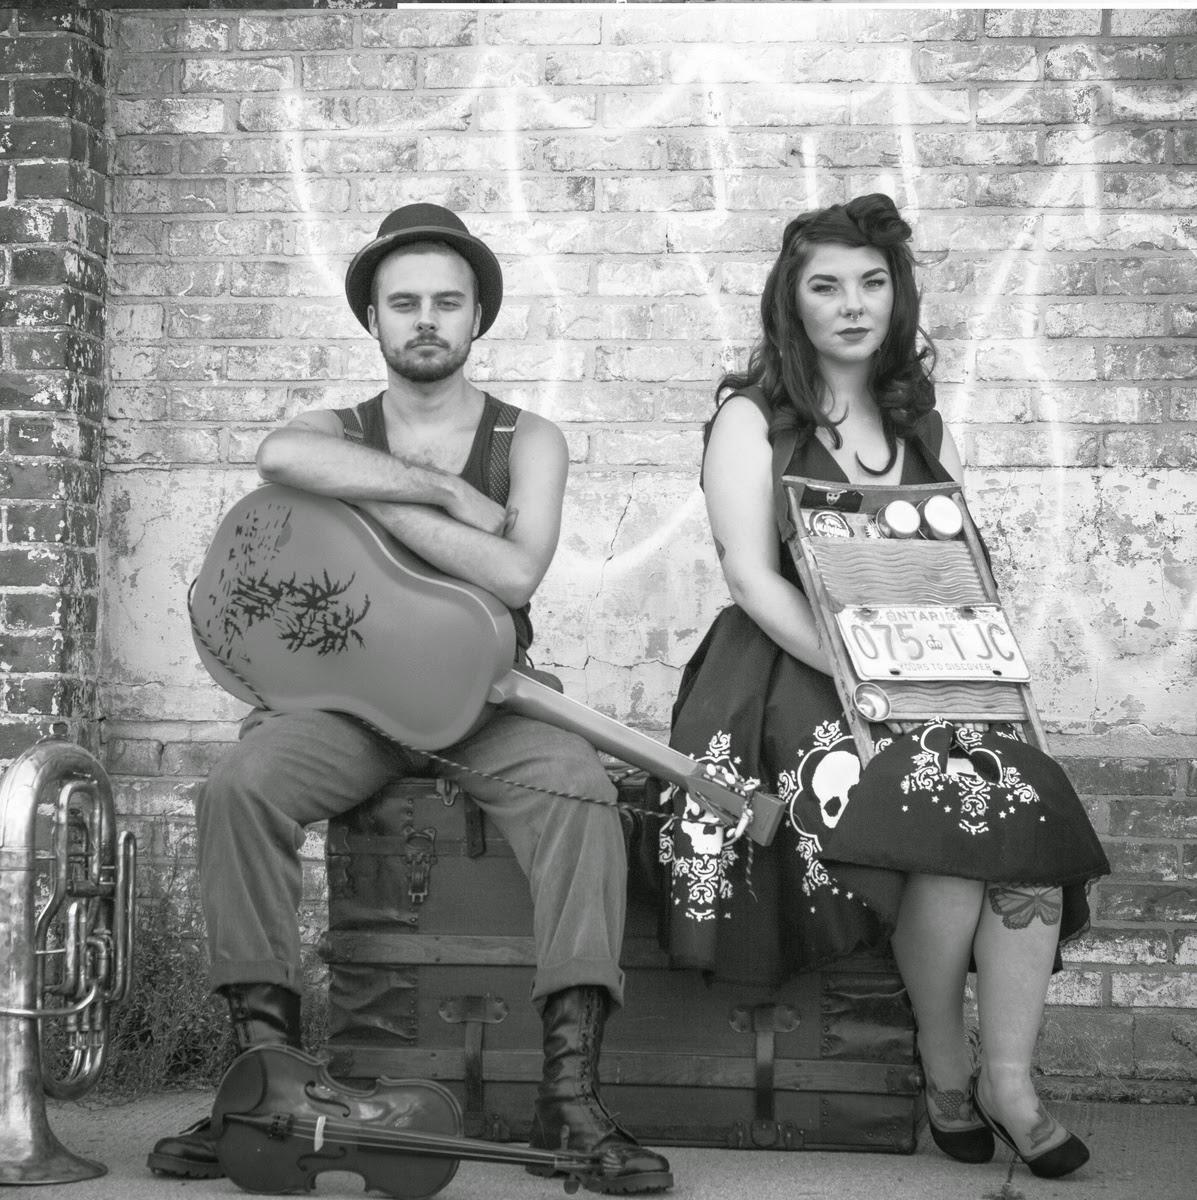 Musician of the Week: The Vaudevillian